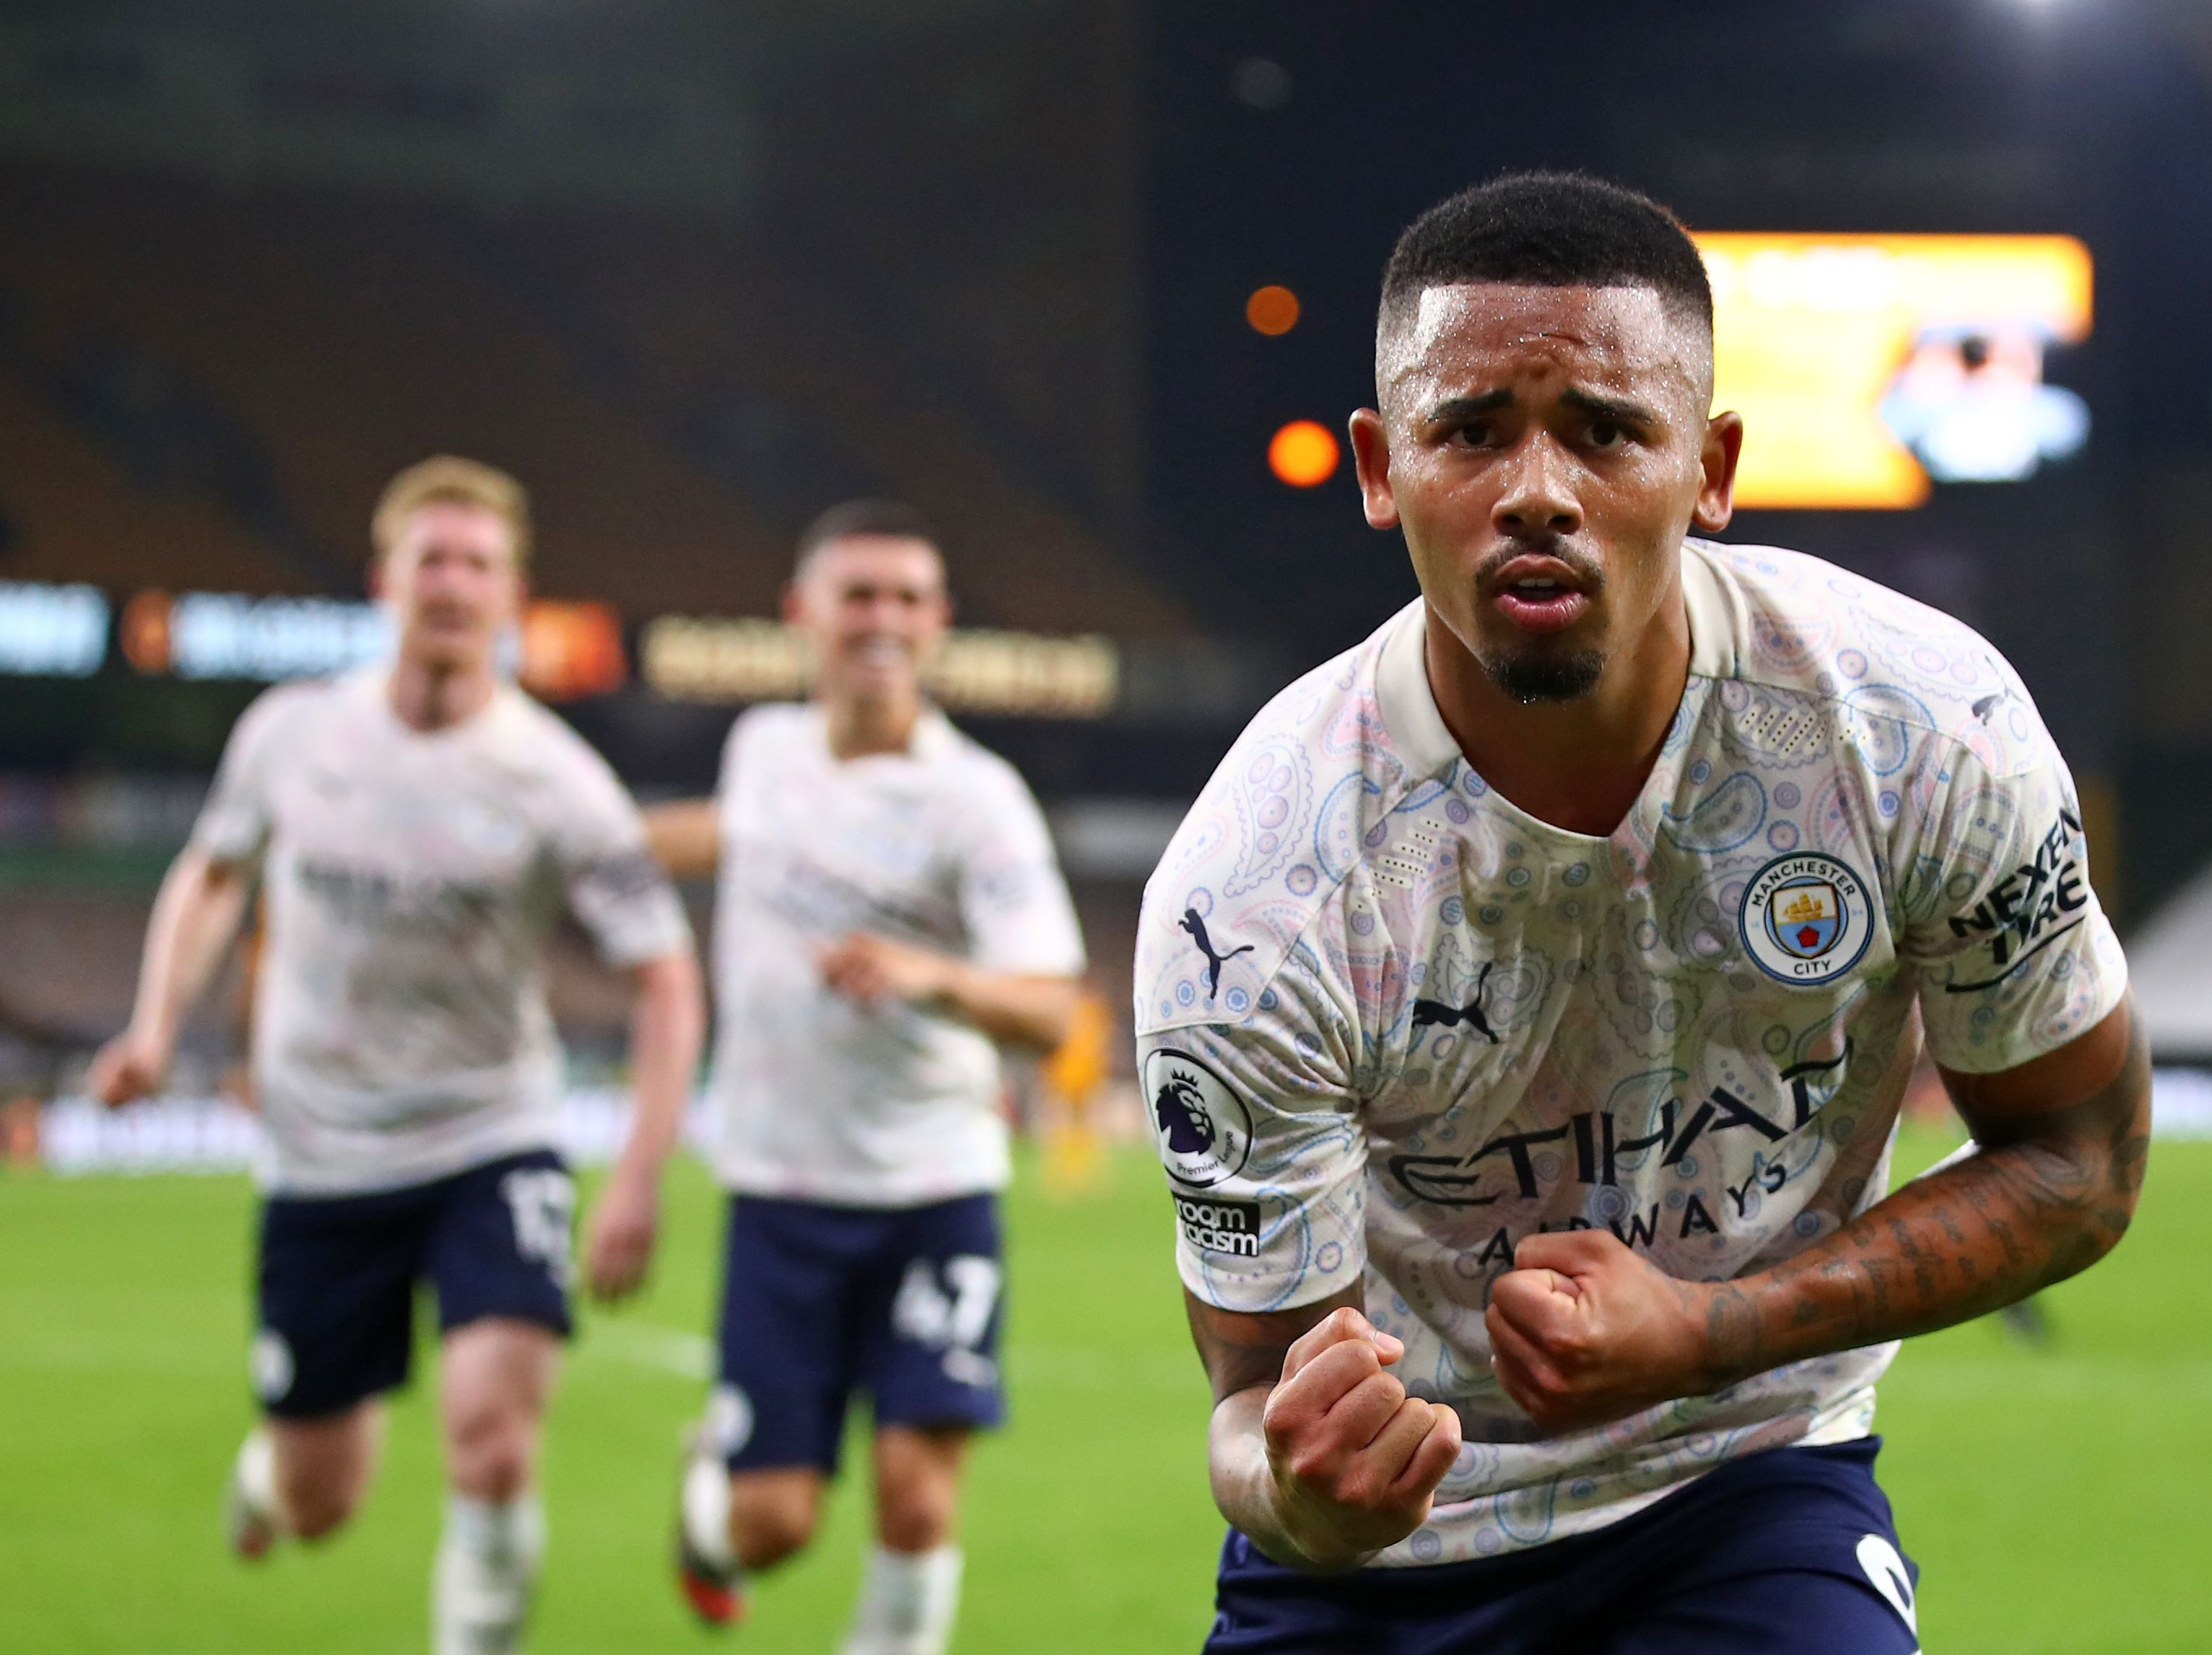 Wolves vs Man City result: Pep Guardiola's side pass litmus test as  attacking talents shine in Premier League return   The Independent